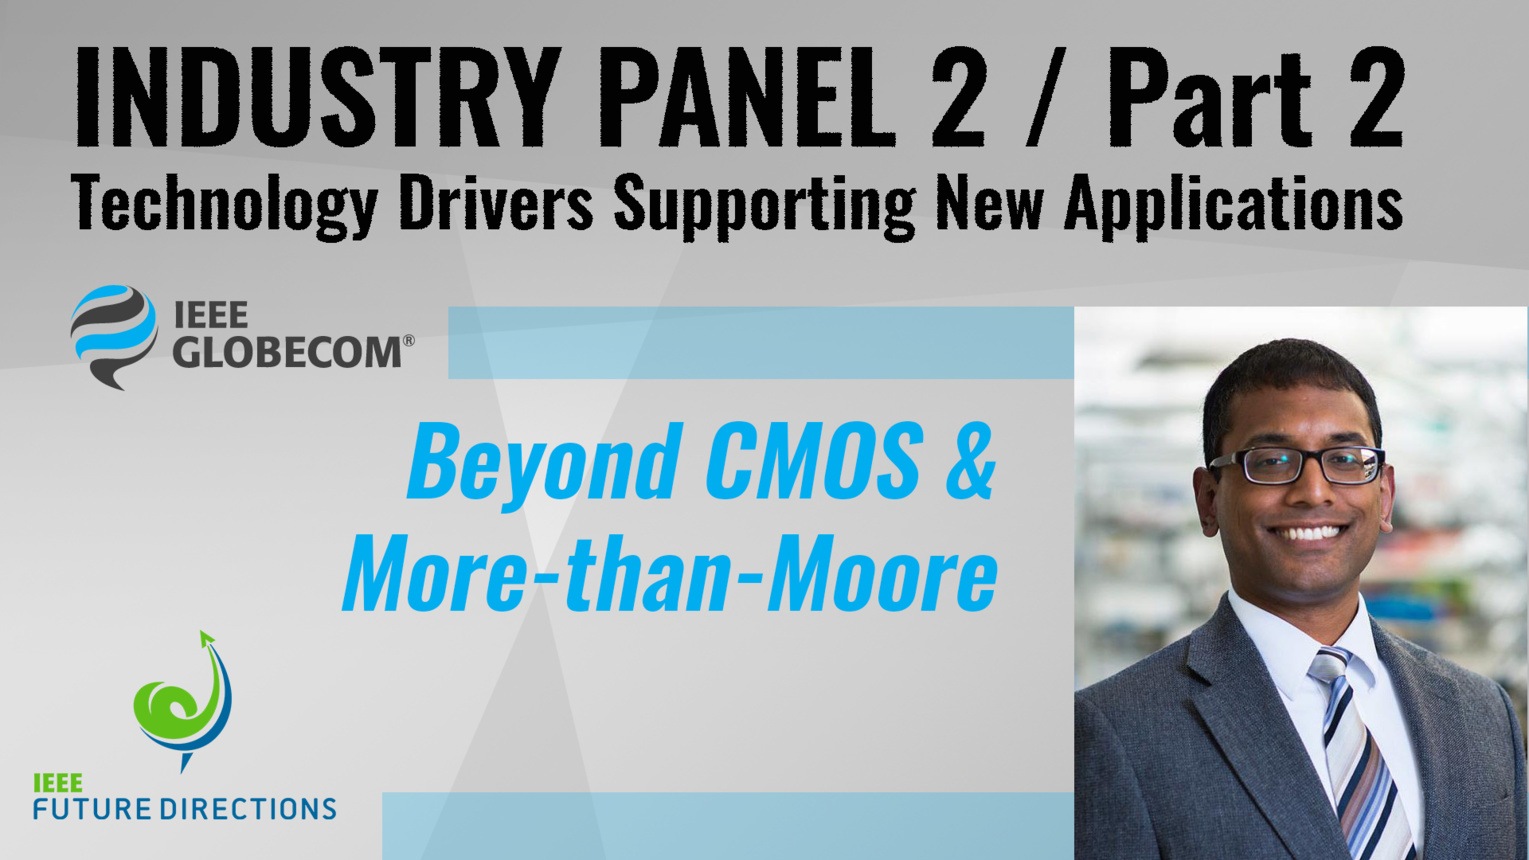 Pt. 2: Beyond CMOS & More-than-Moore - Shamik Das - Industry Panel 2, IEEE Globecom, 2019